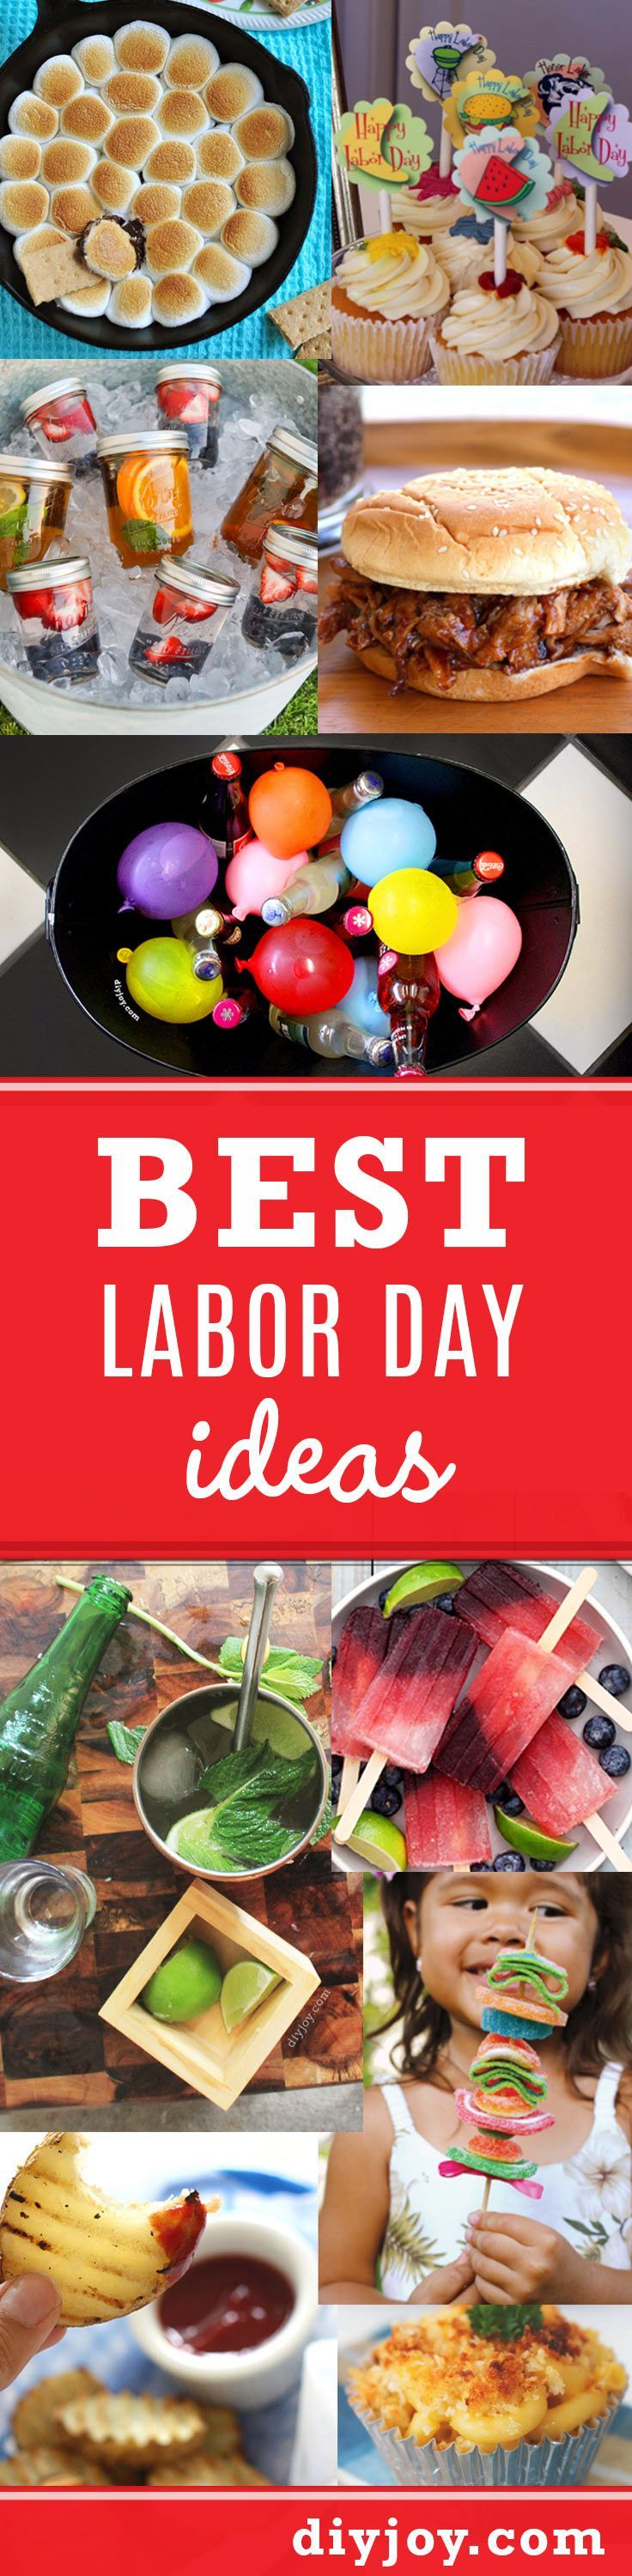 Best Labor Day Ideas for Party Decor, Food and Drinks   DIY Party Planning for a…